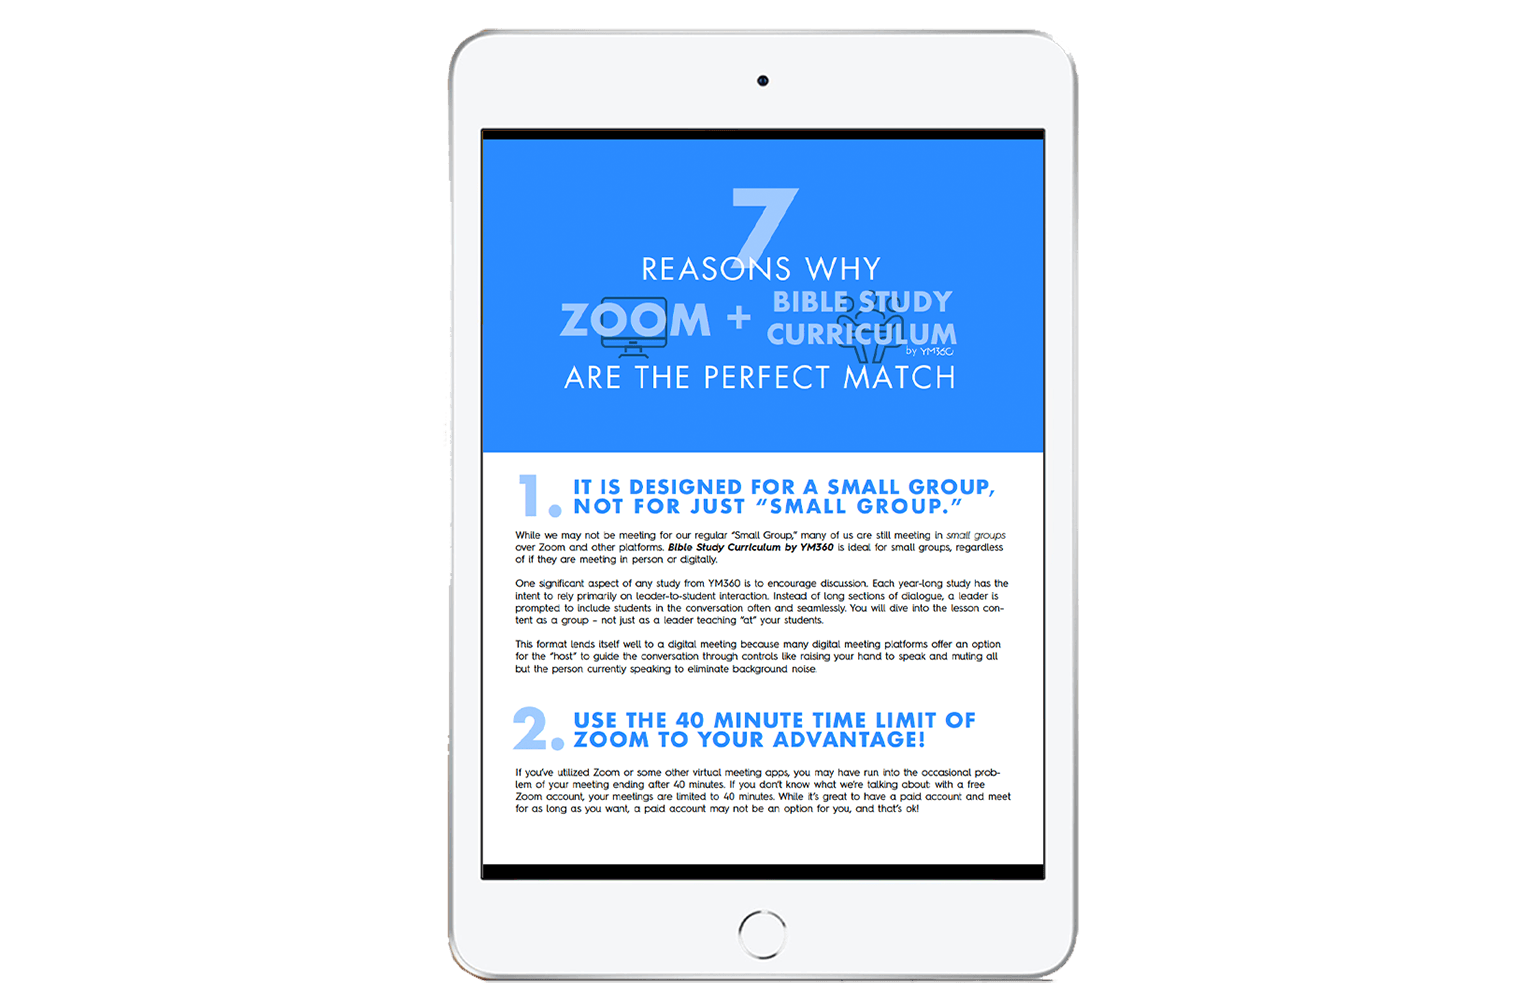 7 Reasons Why Zoom and Bible Study Curriculum by YM360 Are the Perfect Pair